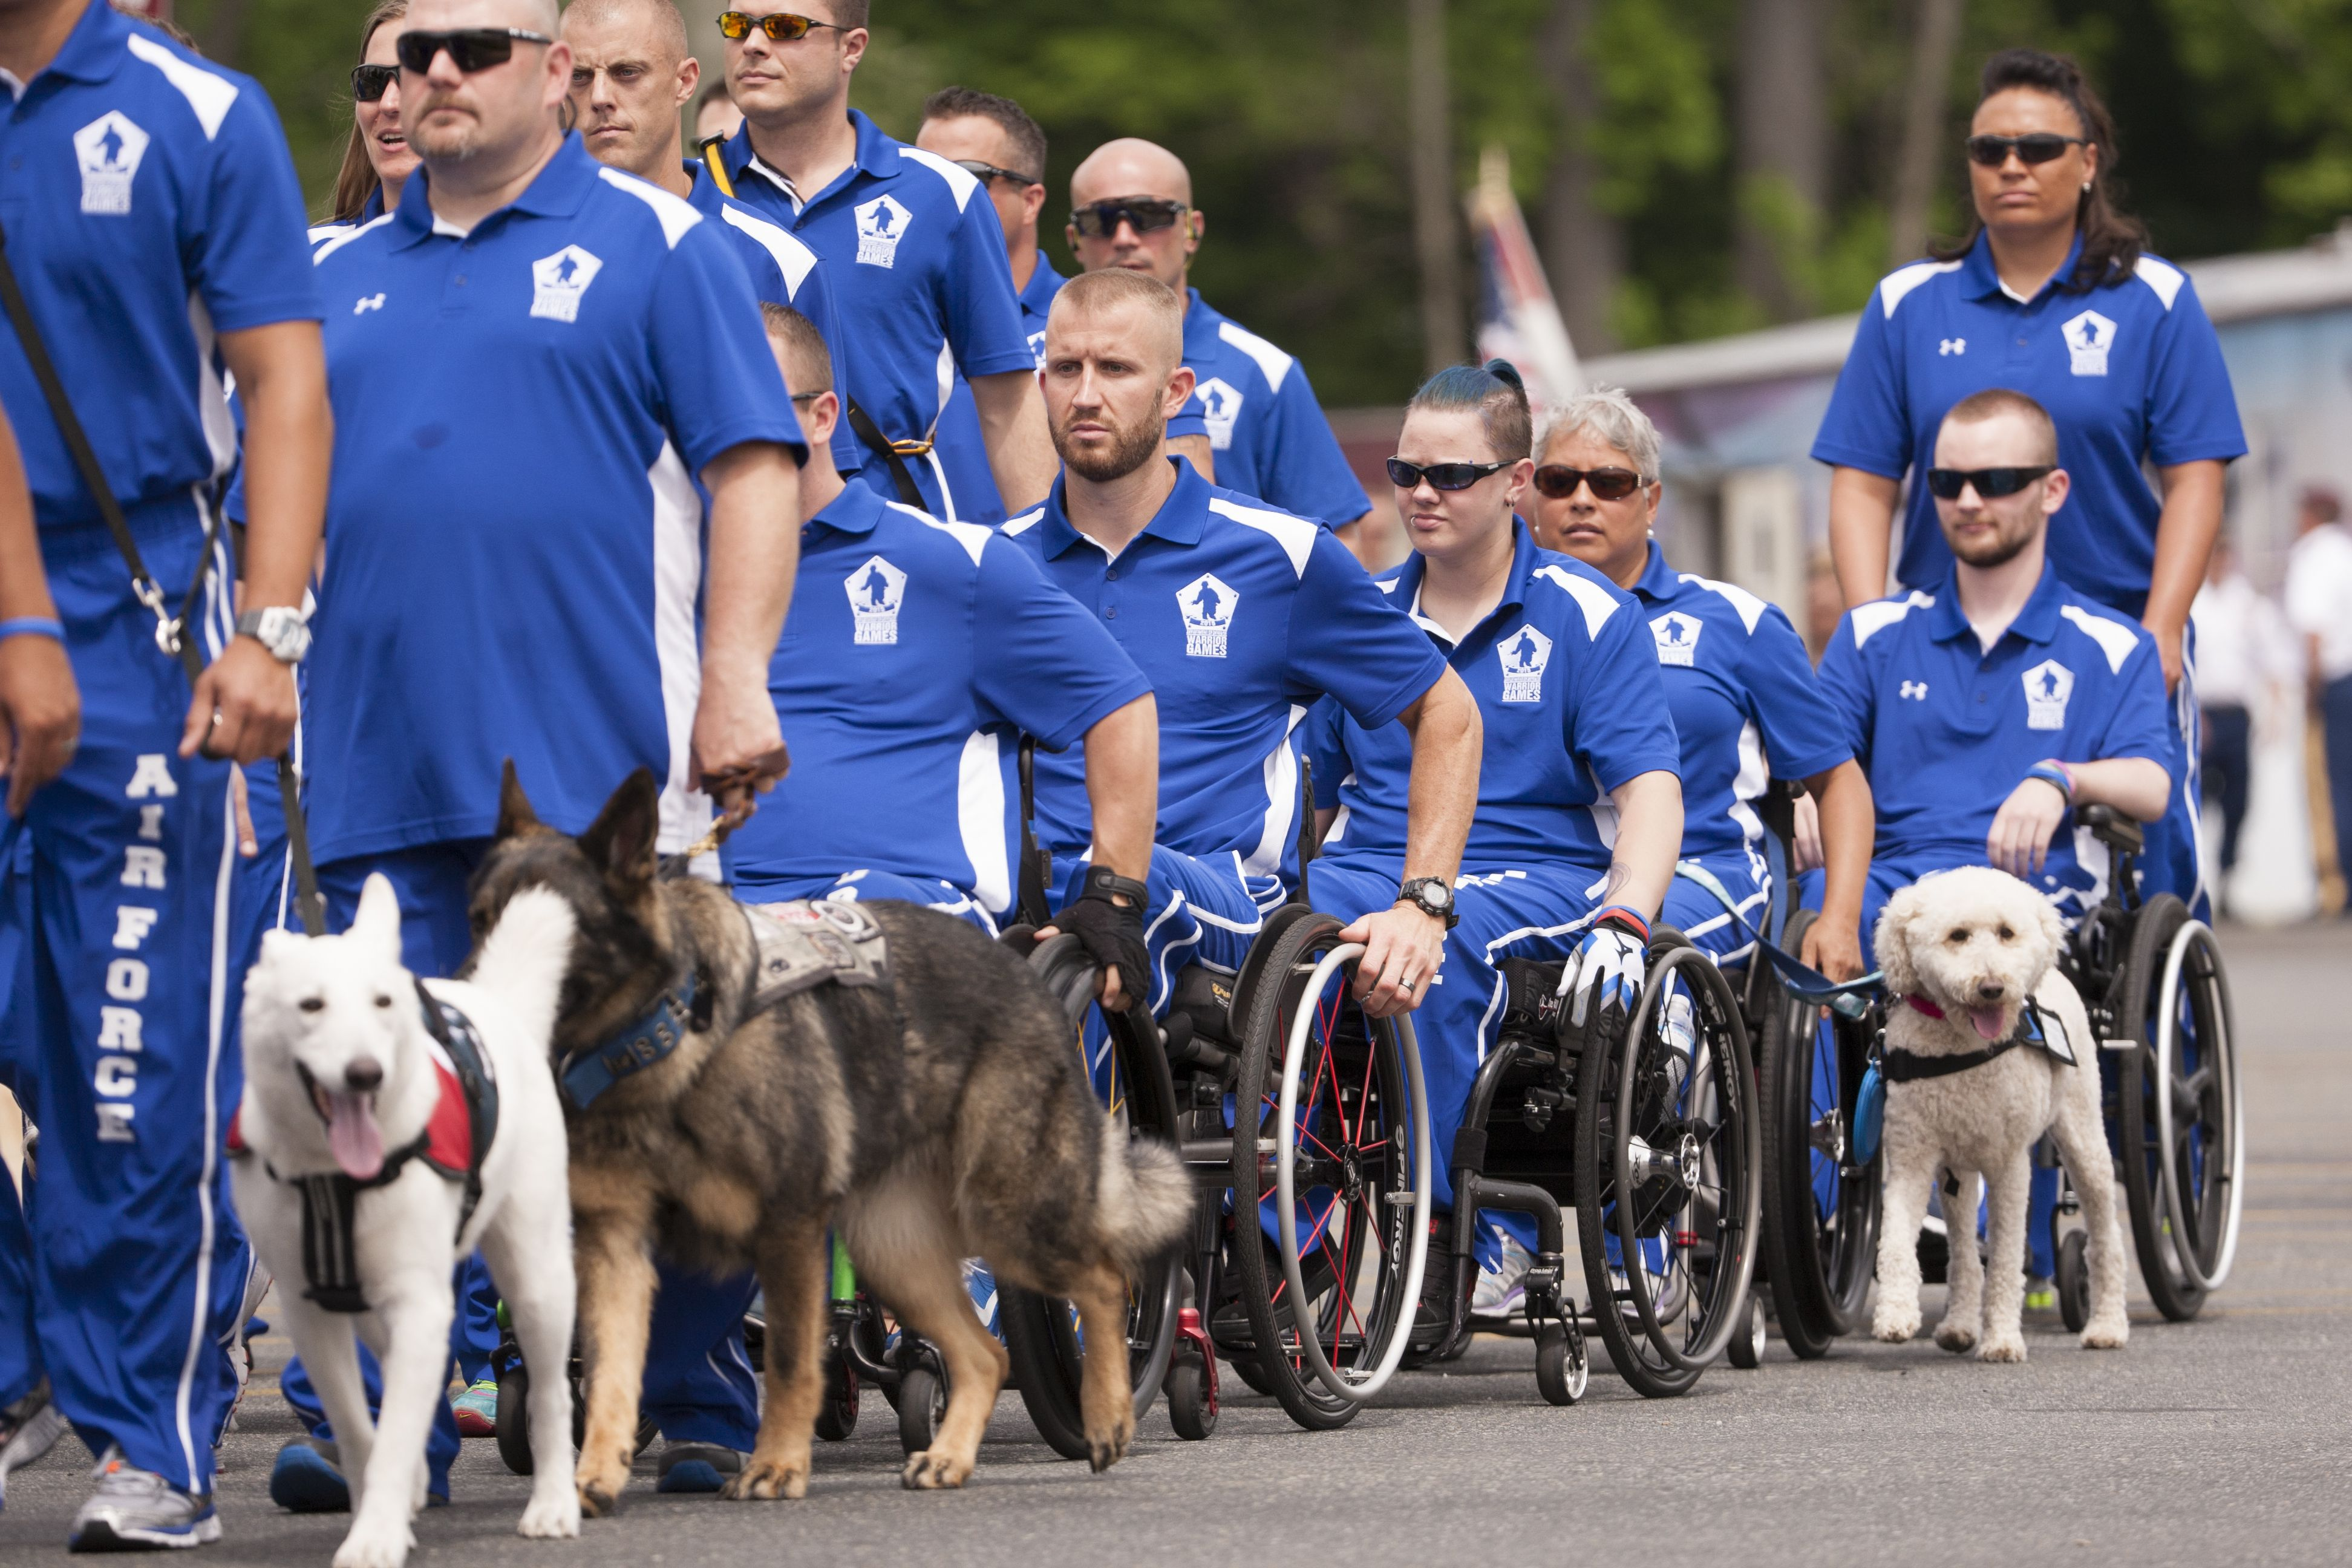 VA amends access rules for service dogs at facilities